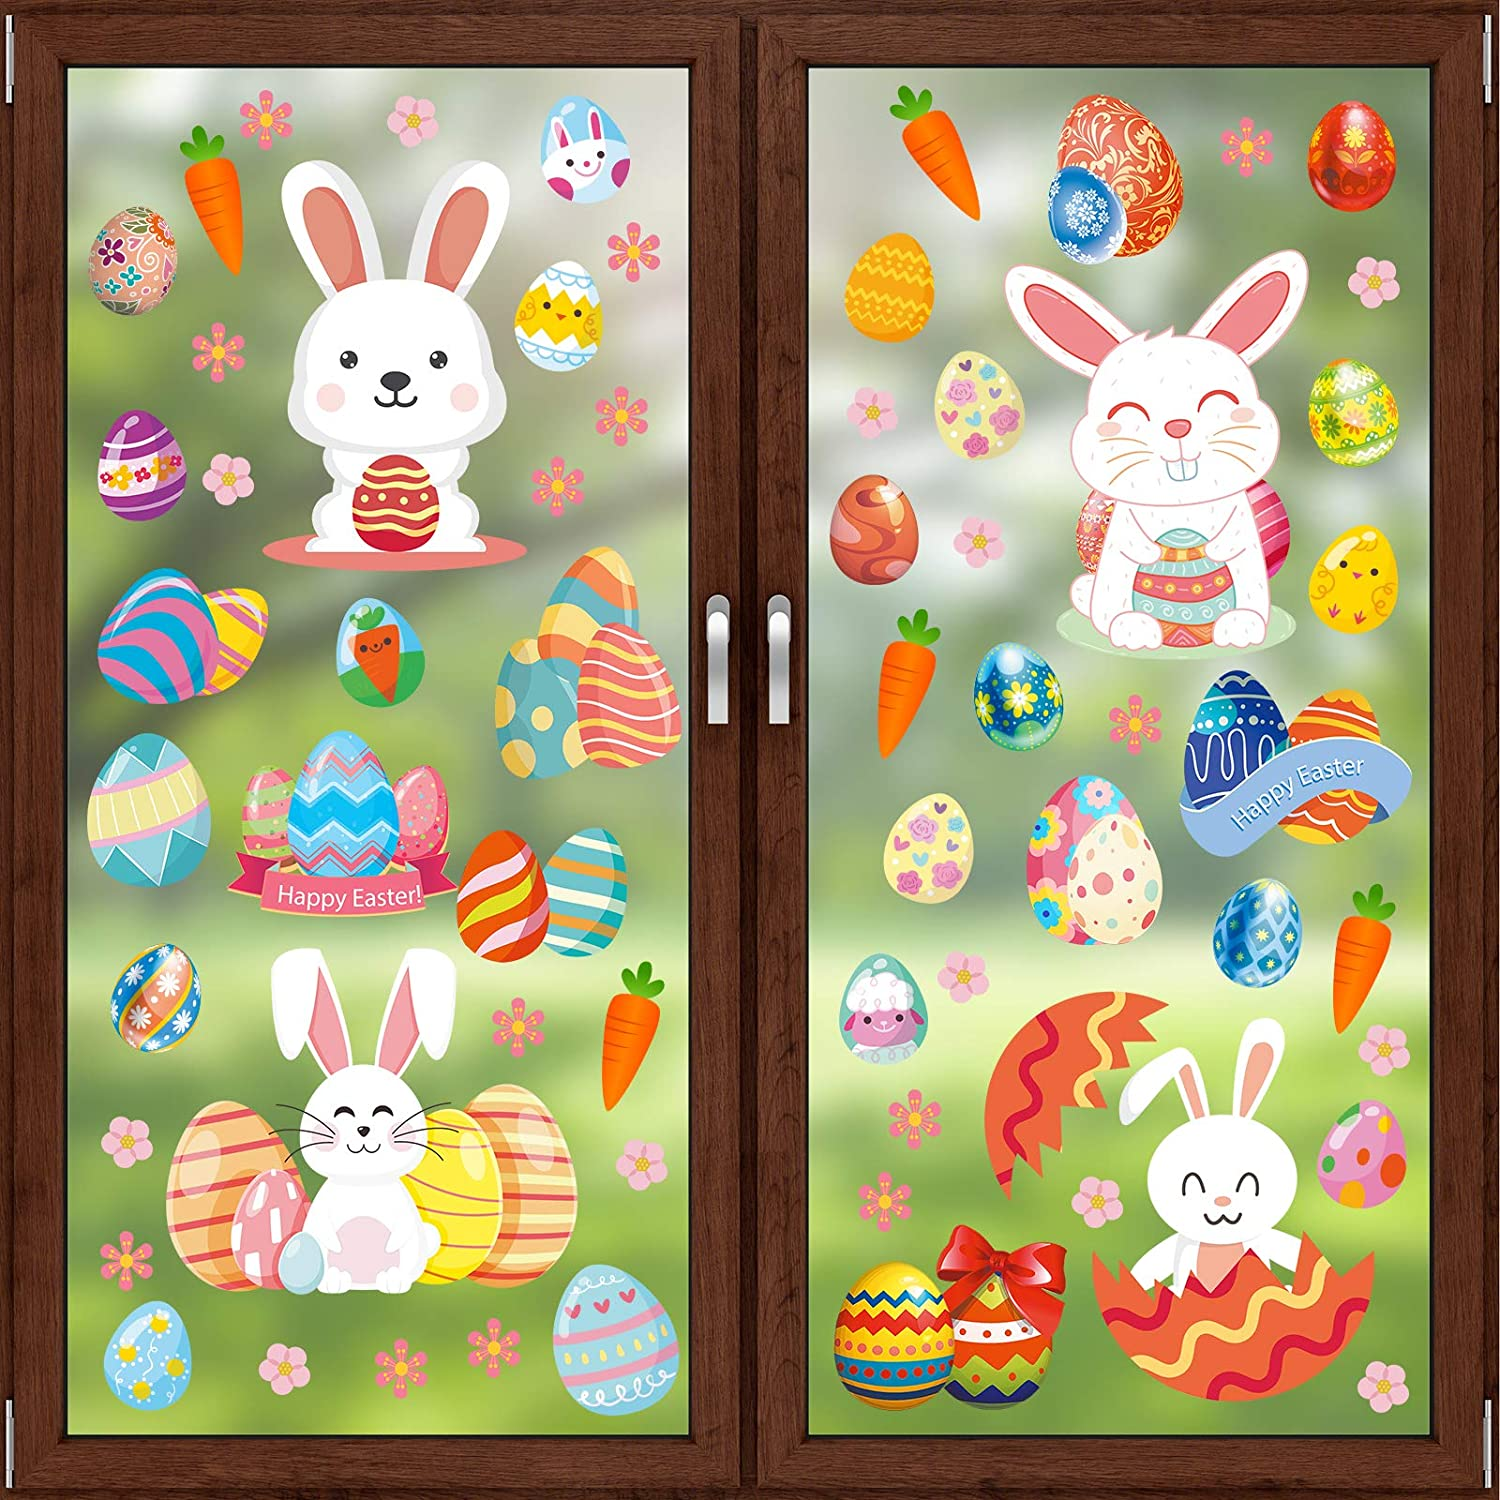 Rotumaty Easter Window Clings Decorations, 8 Sheets Bunny Easter Eggs Flowers Decal Stickers for Home School Office Party Supplies Ornaments